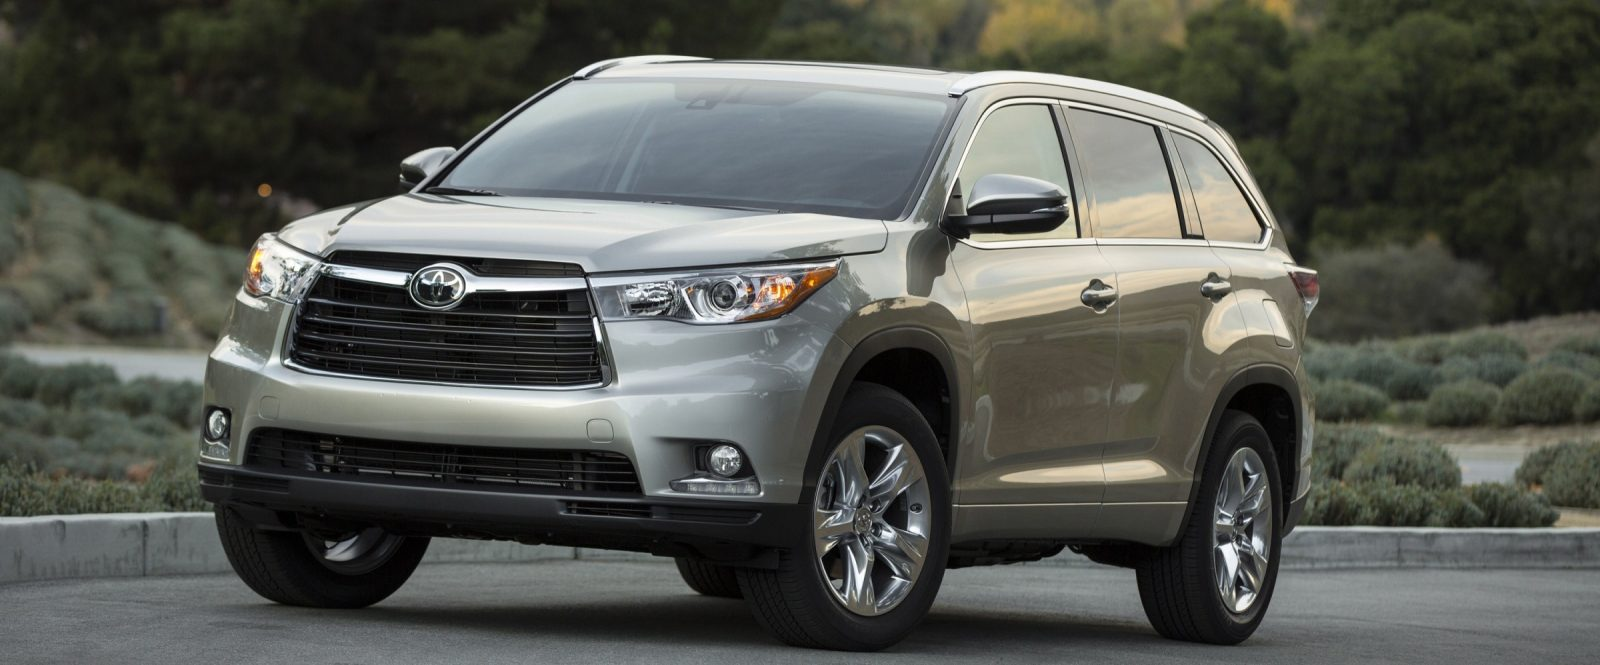 Buyers guide to the 2014 toyota highlander with specs pricing and 88 photos Toyota highlander 2014 exterior